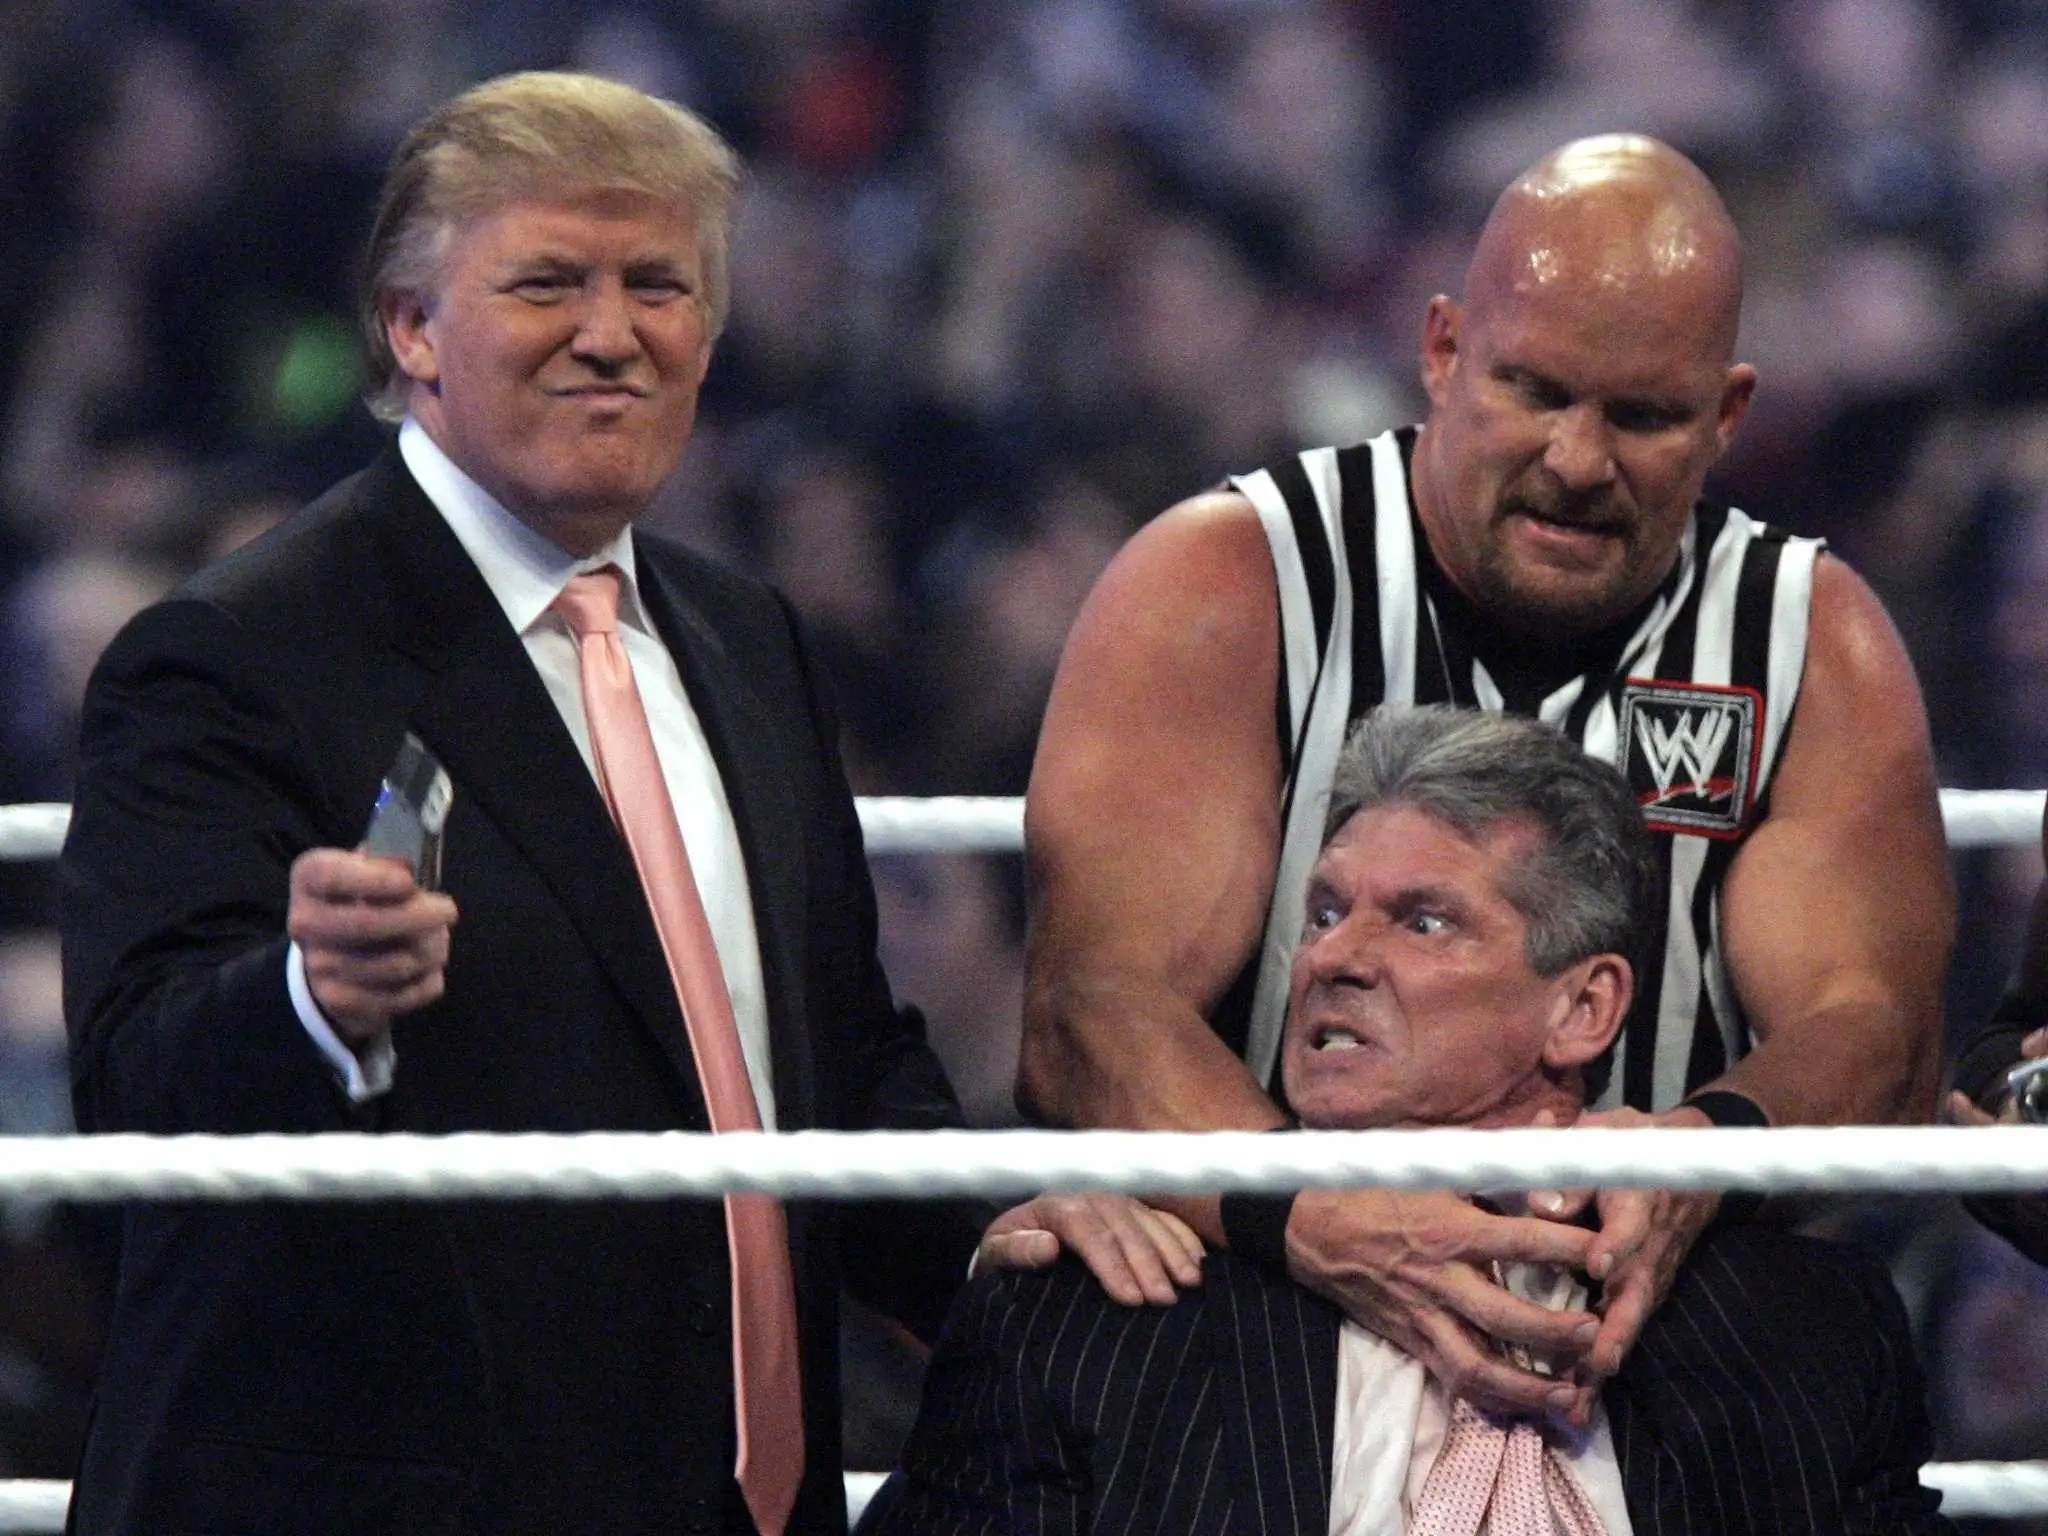 Image result for photos of trump WWE